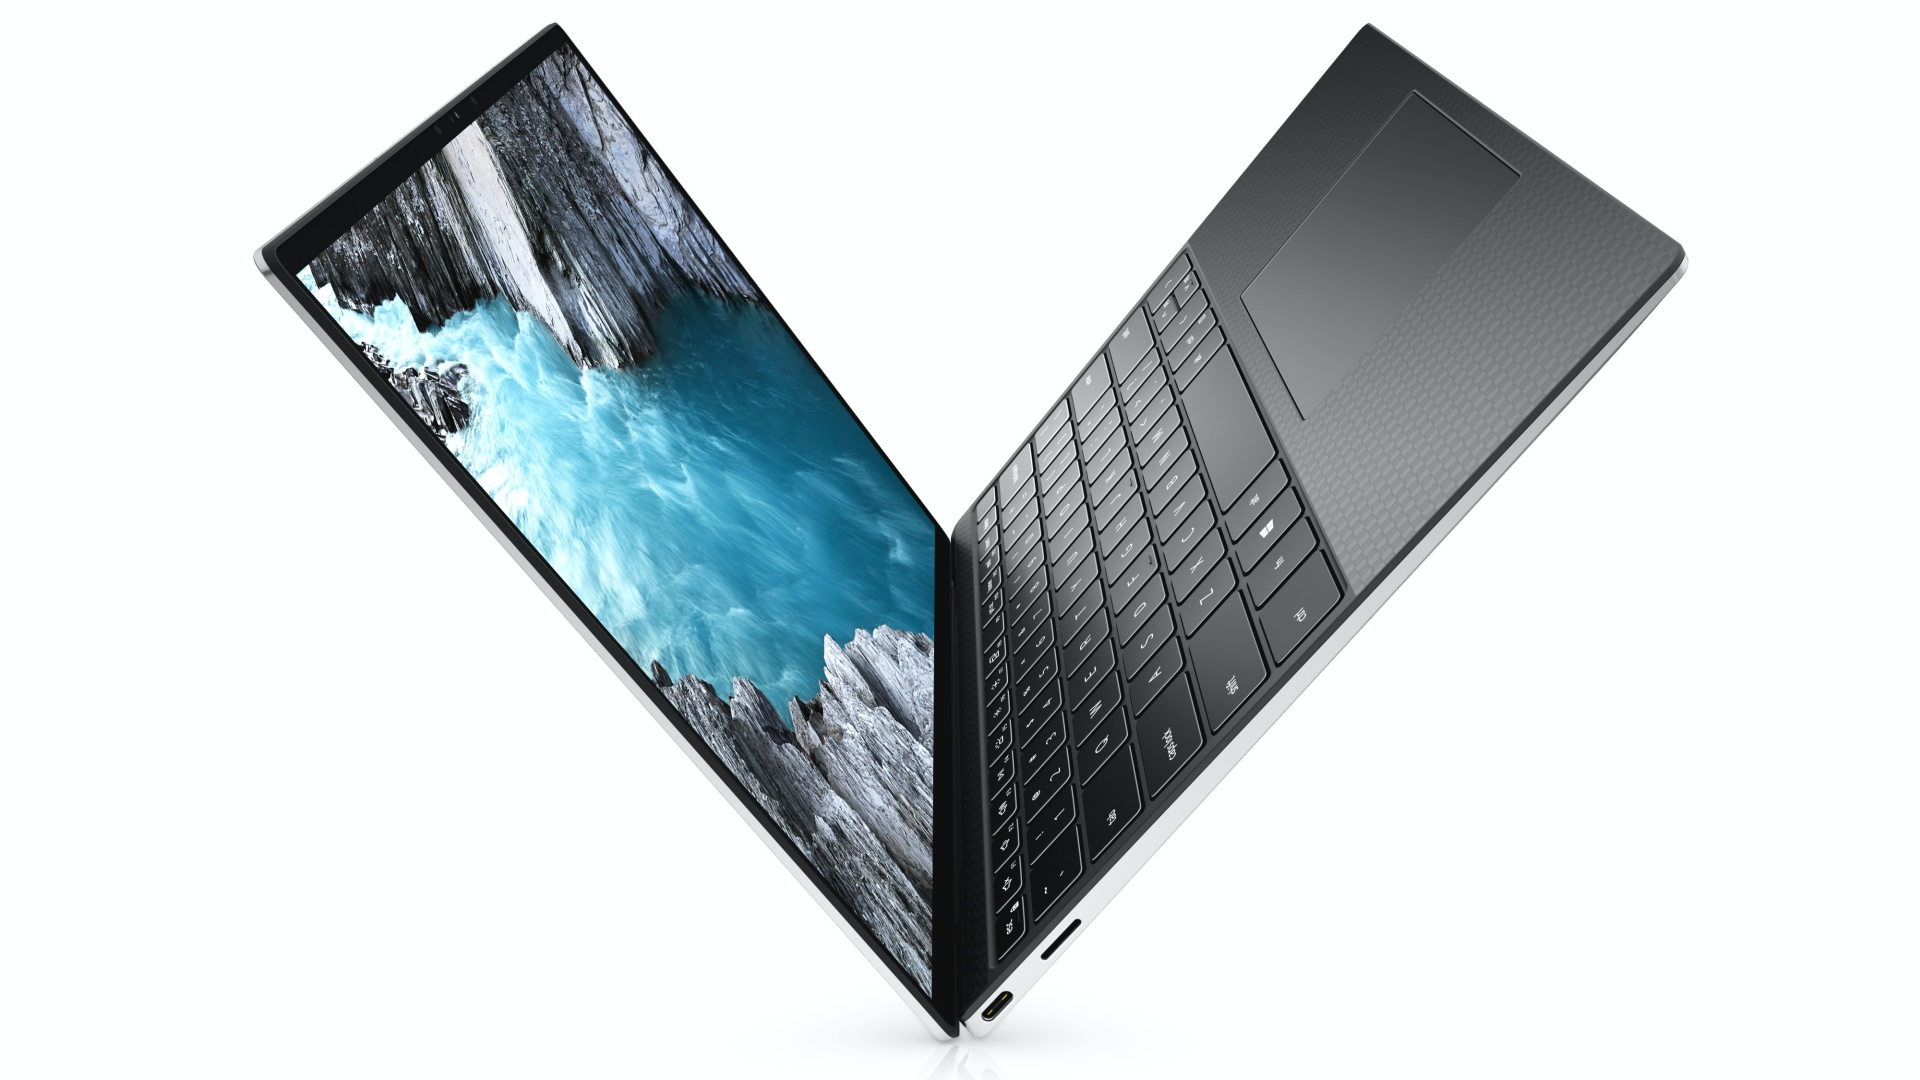 Dell's XPS range is getting an Intel 11th gen refresh and Evo certification - htxt.africa